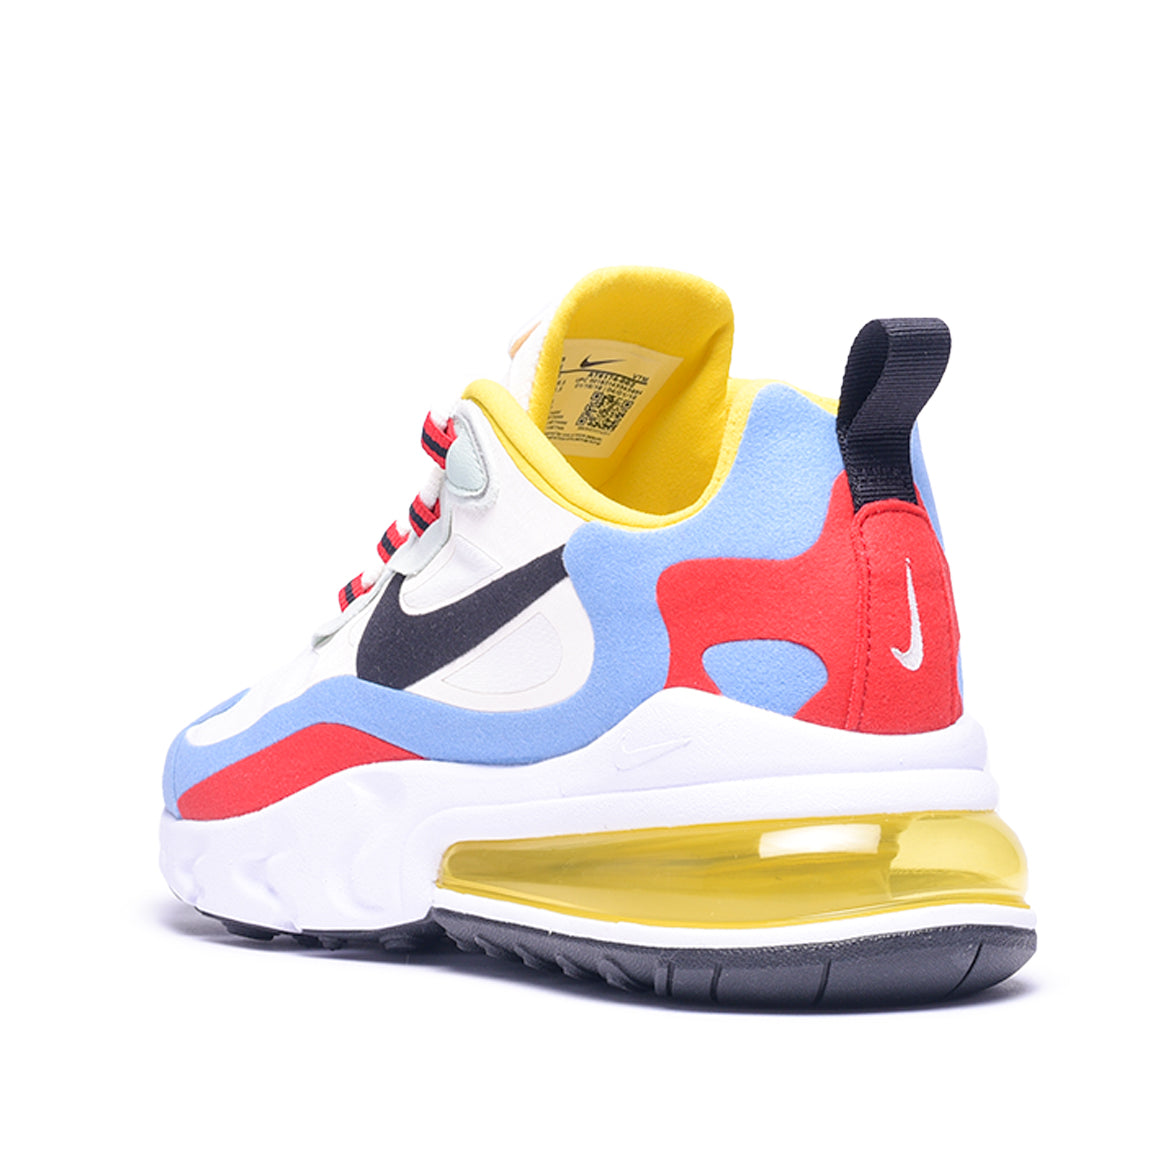 "WMNS AIR MAX 270 REACT ""BAUHAUS"""